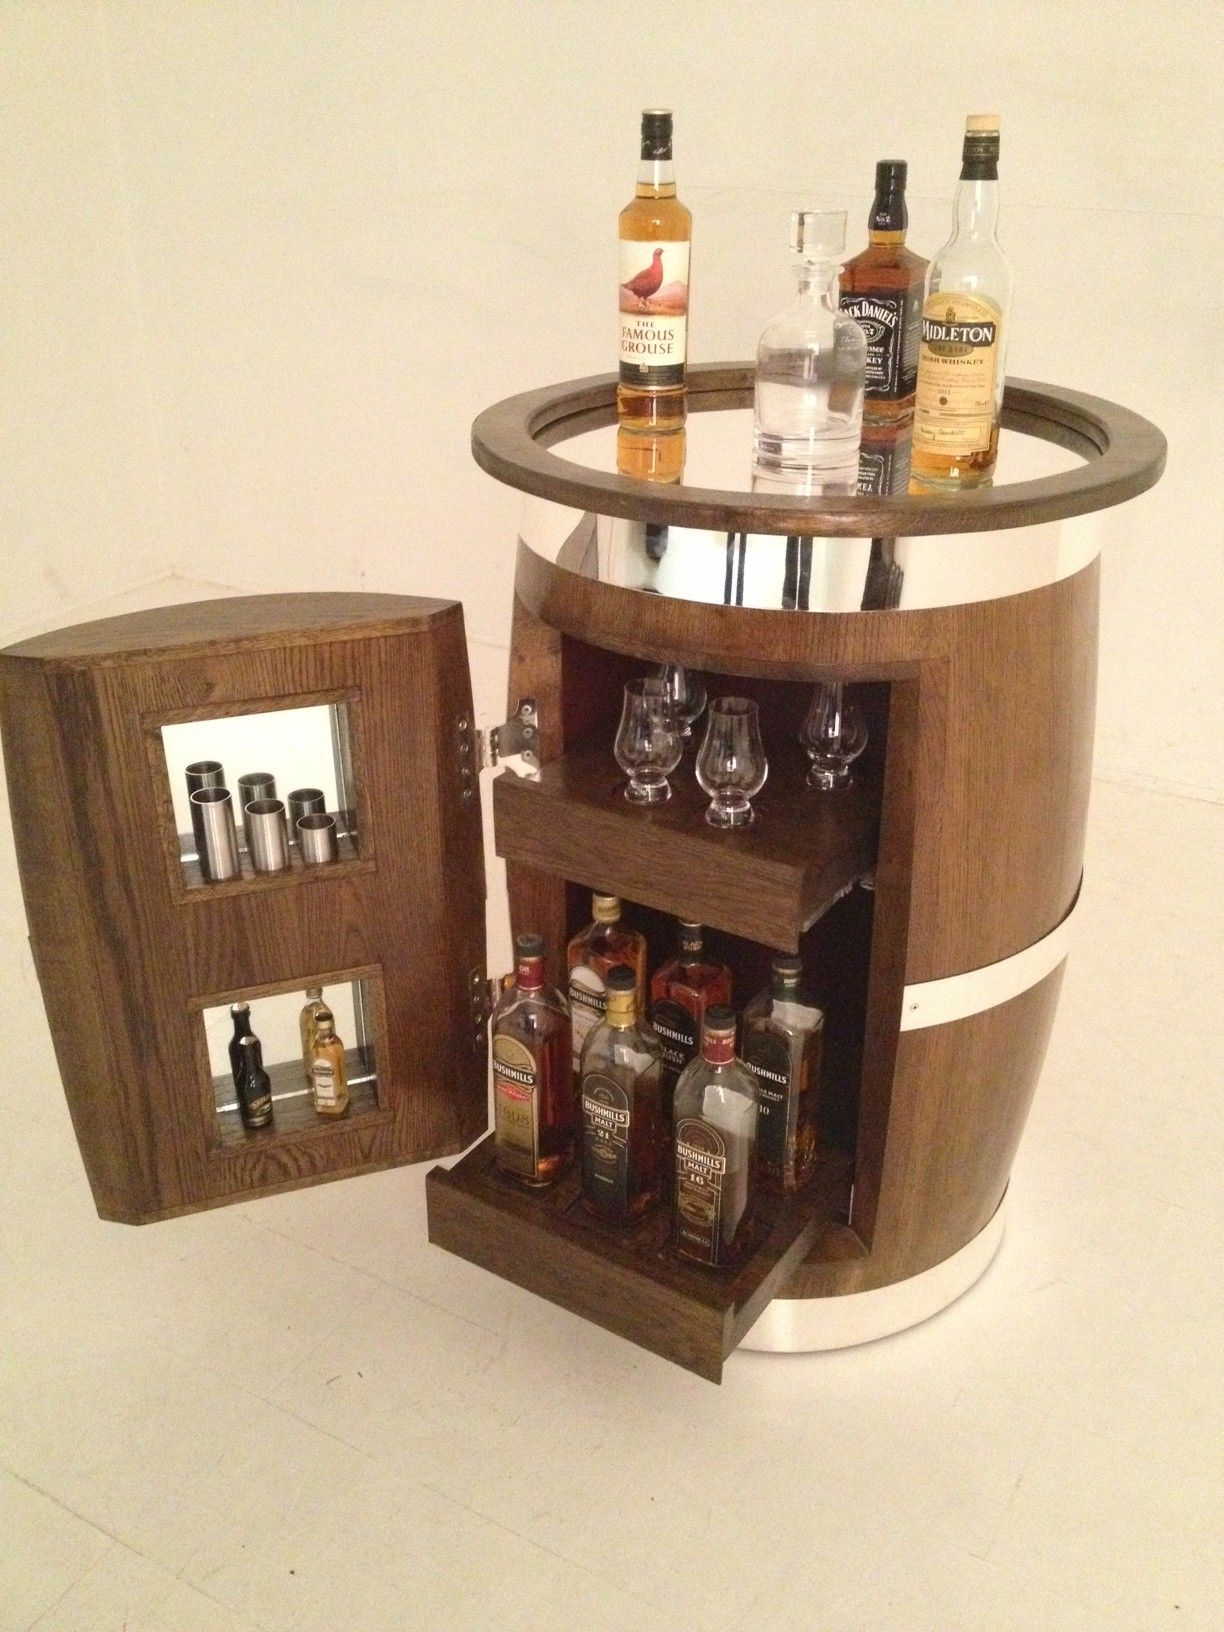 Wohnzimmer Barschrank A Whiskey Cabinet Made From The Barrels Of Old Bushmills